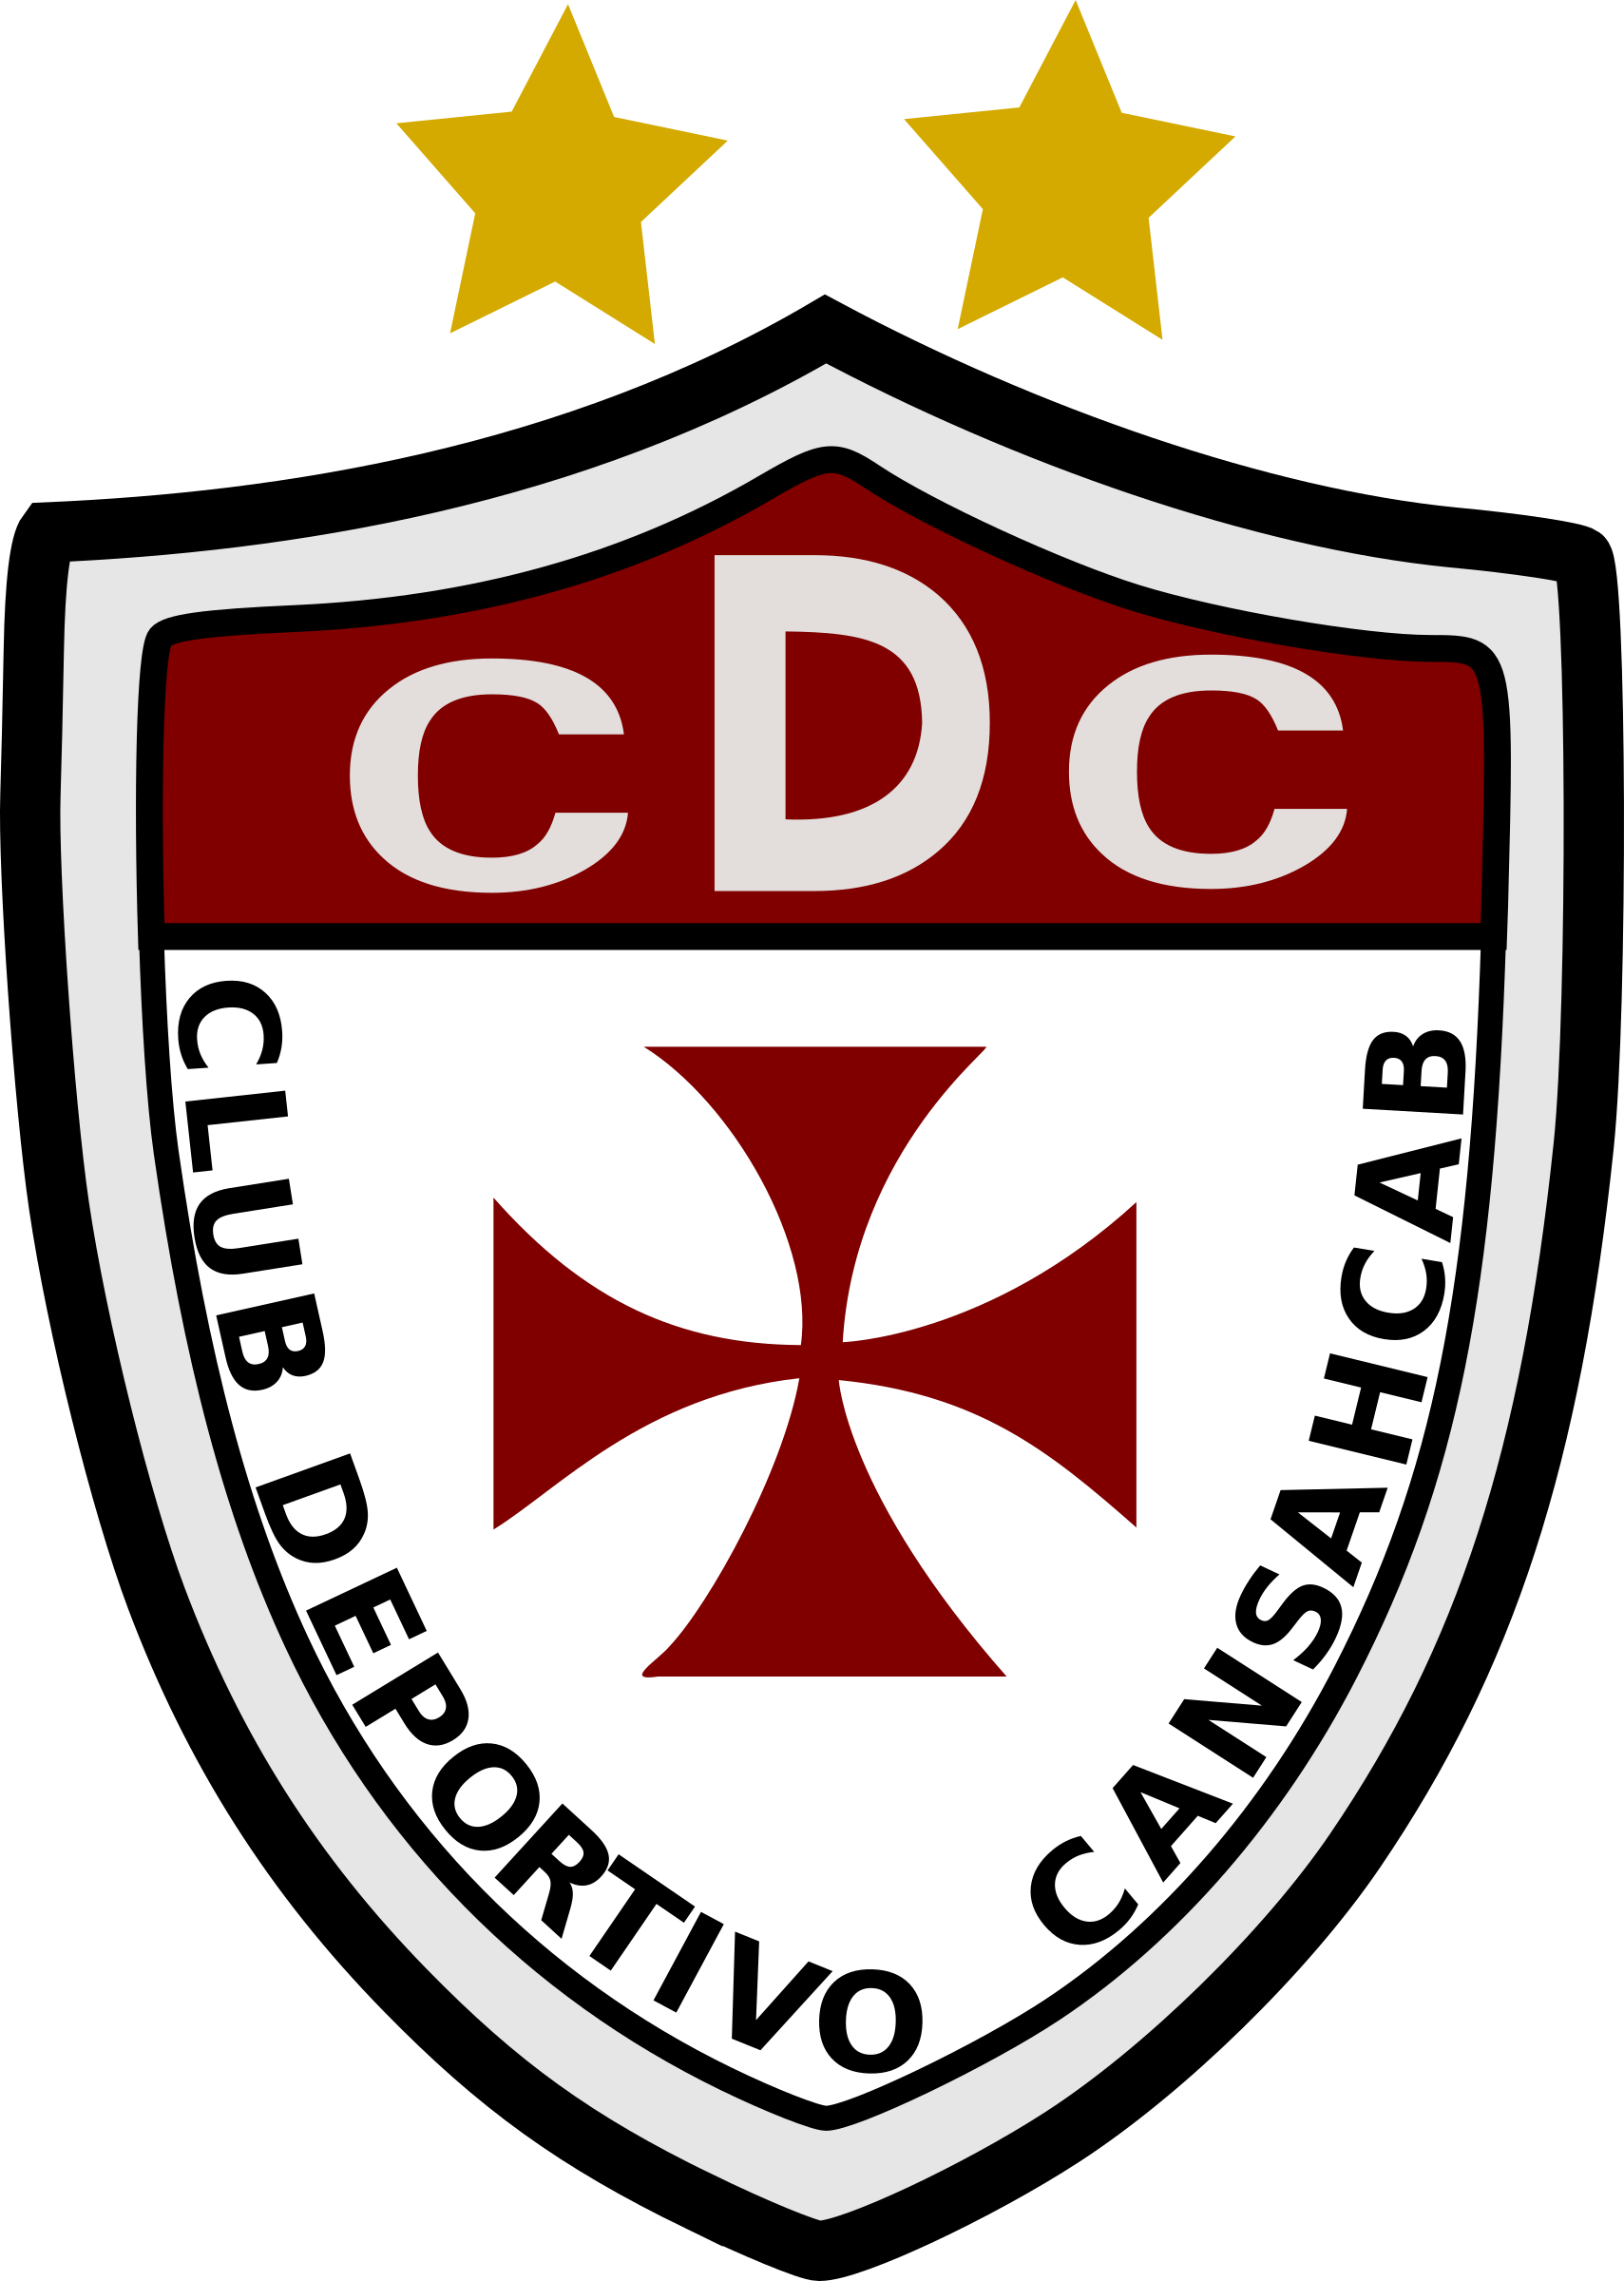 Club Deportivo Cansahcab by luischuc